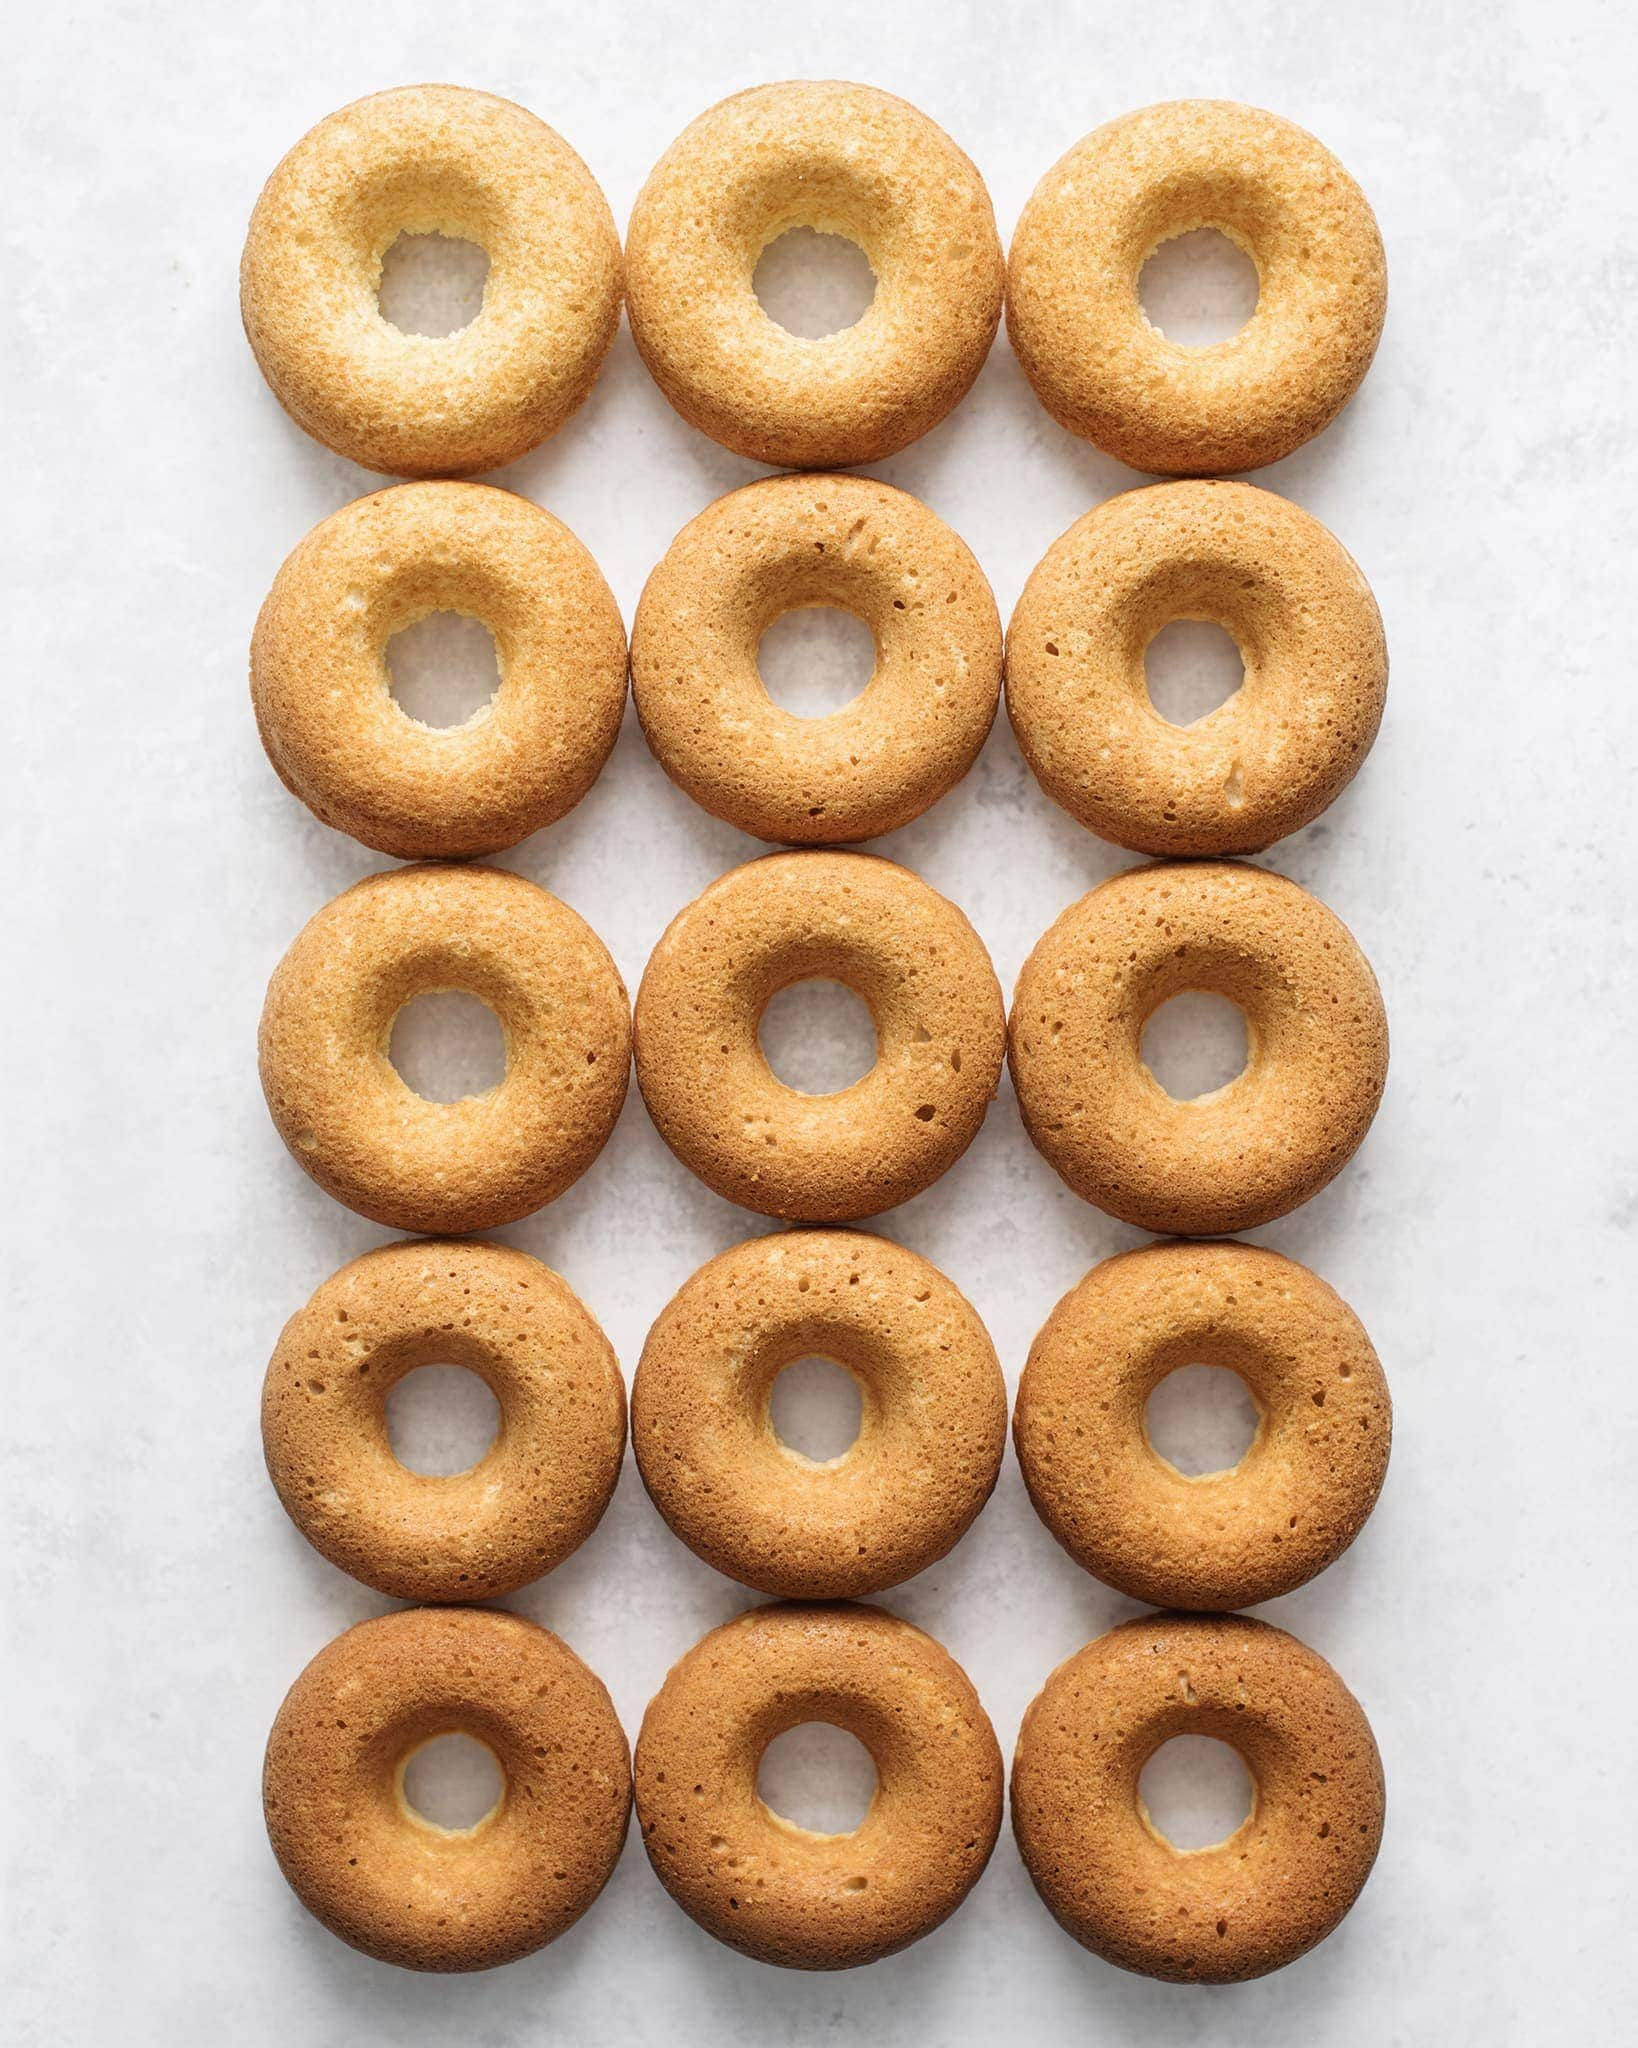 Rows of baked donuts